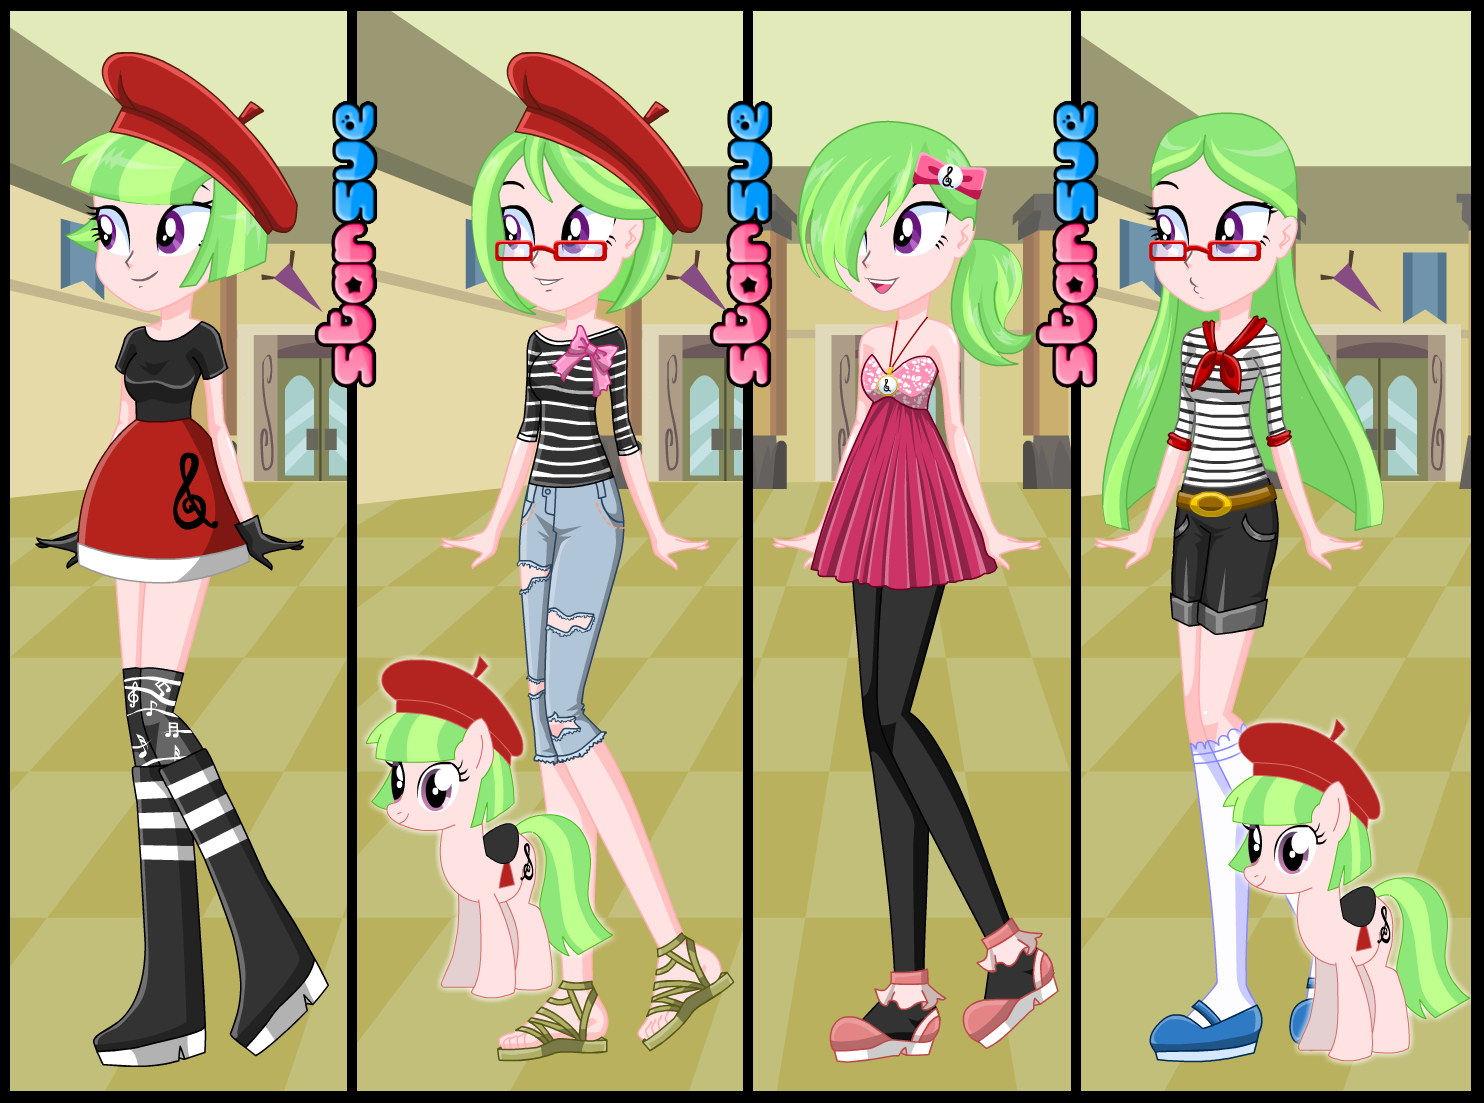 Five nights at freddys dress up game - My Little Pony Equestria Girls Watermelody Dress Up Game Http Www